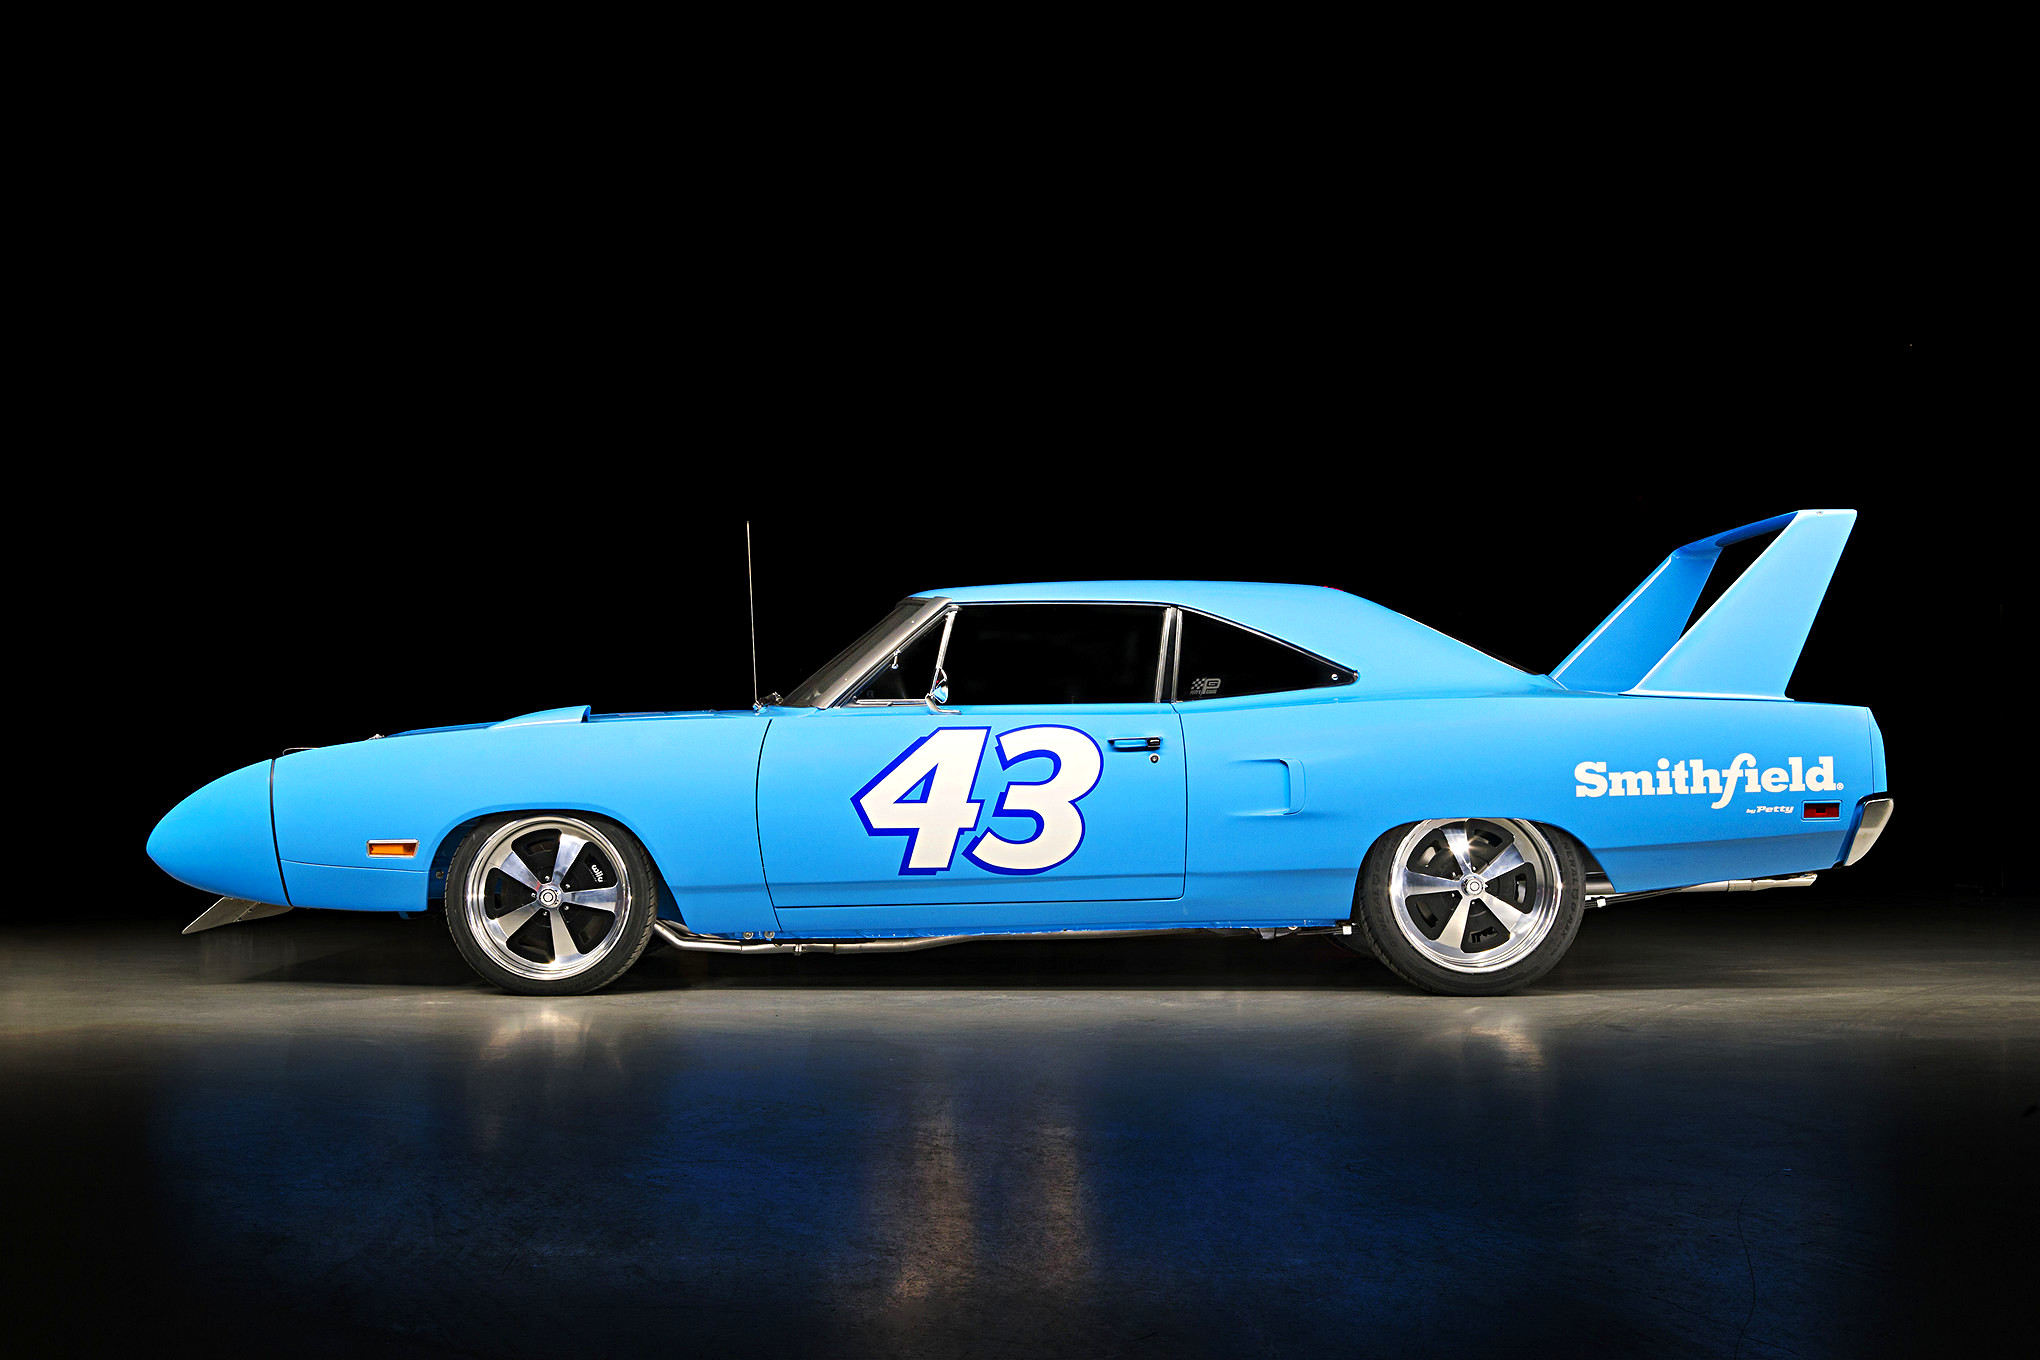 Iphone Wallpaper Muscle Car Plymouth Superbird Hd Wallpaper Background Image